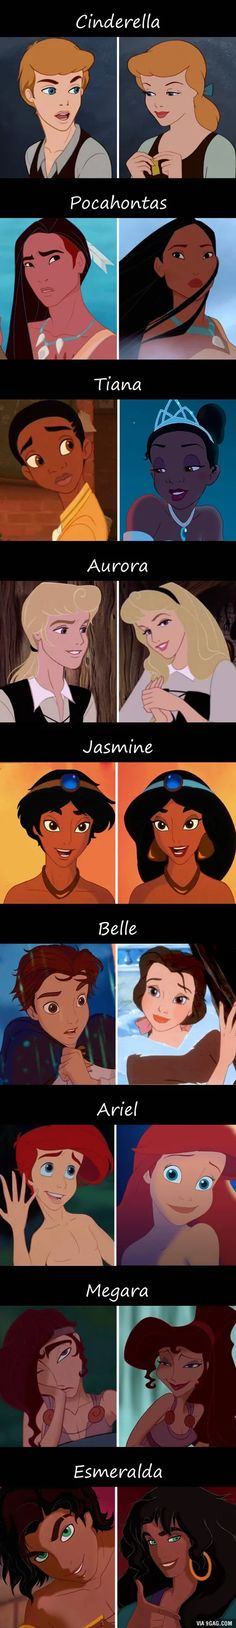 What Would Disney Princesses Look Like If They Were Men? What Would Disney Princesses Look Like If They Were Men? Disney Pixar, Anime Disney, Walt Disney, Disney Marvel, Cute Disney, Disney And Dreamworks, Disney Animation, Disney Genderbent, Humanized Disney